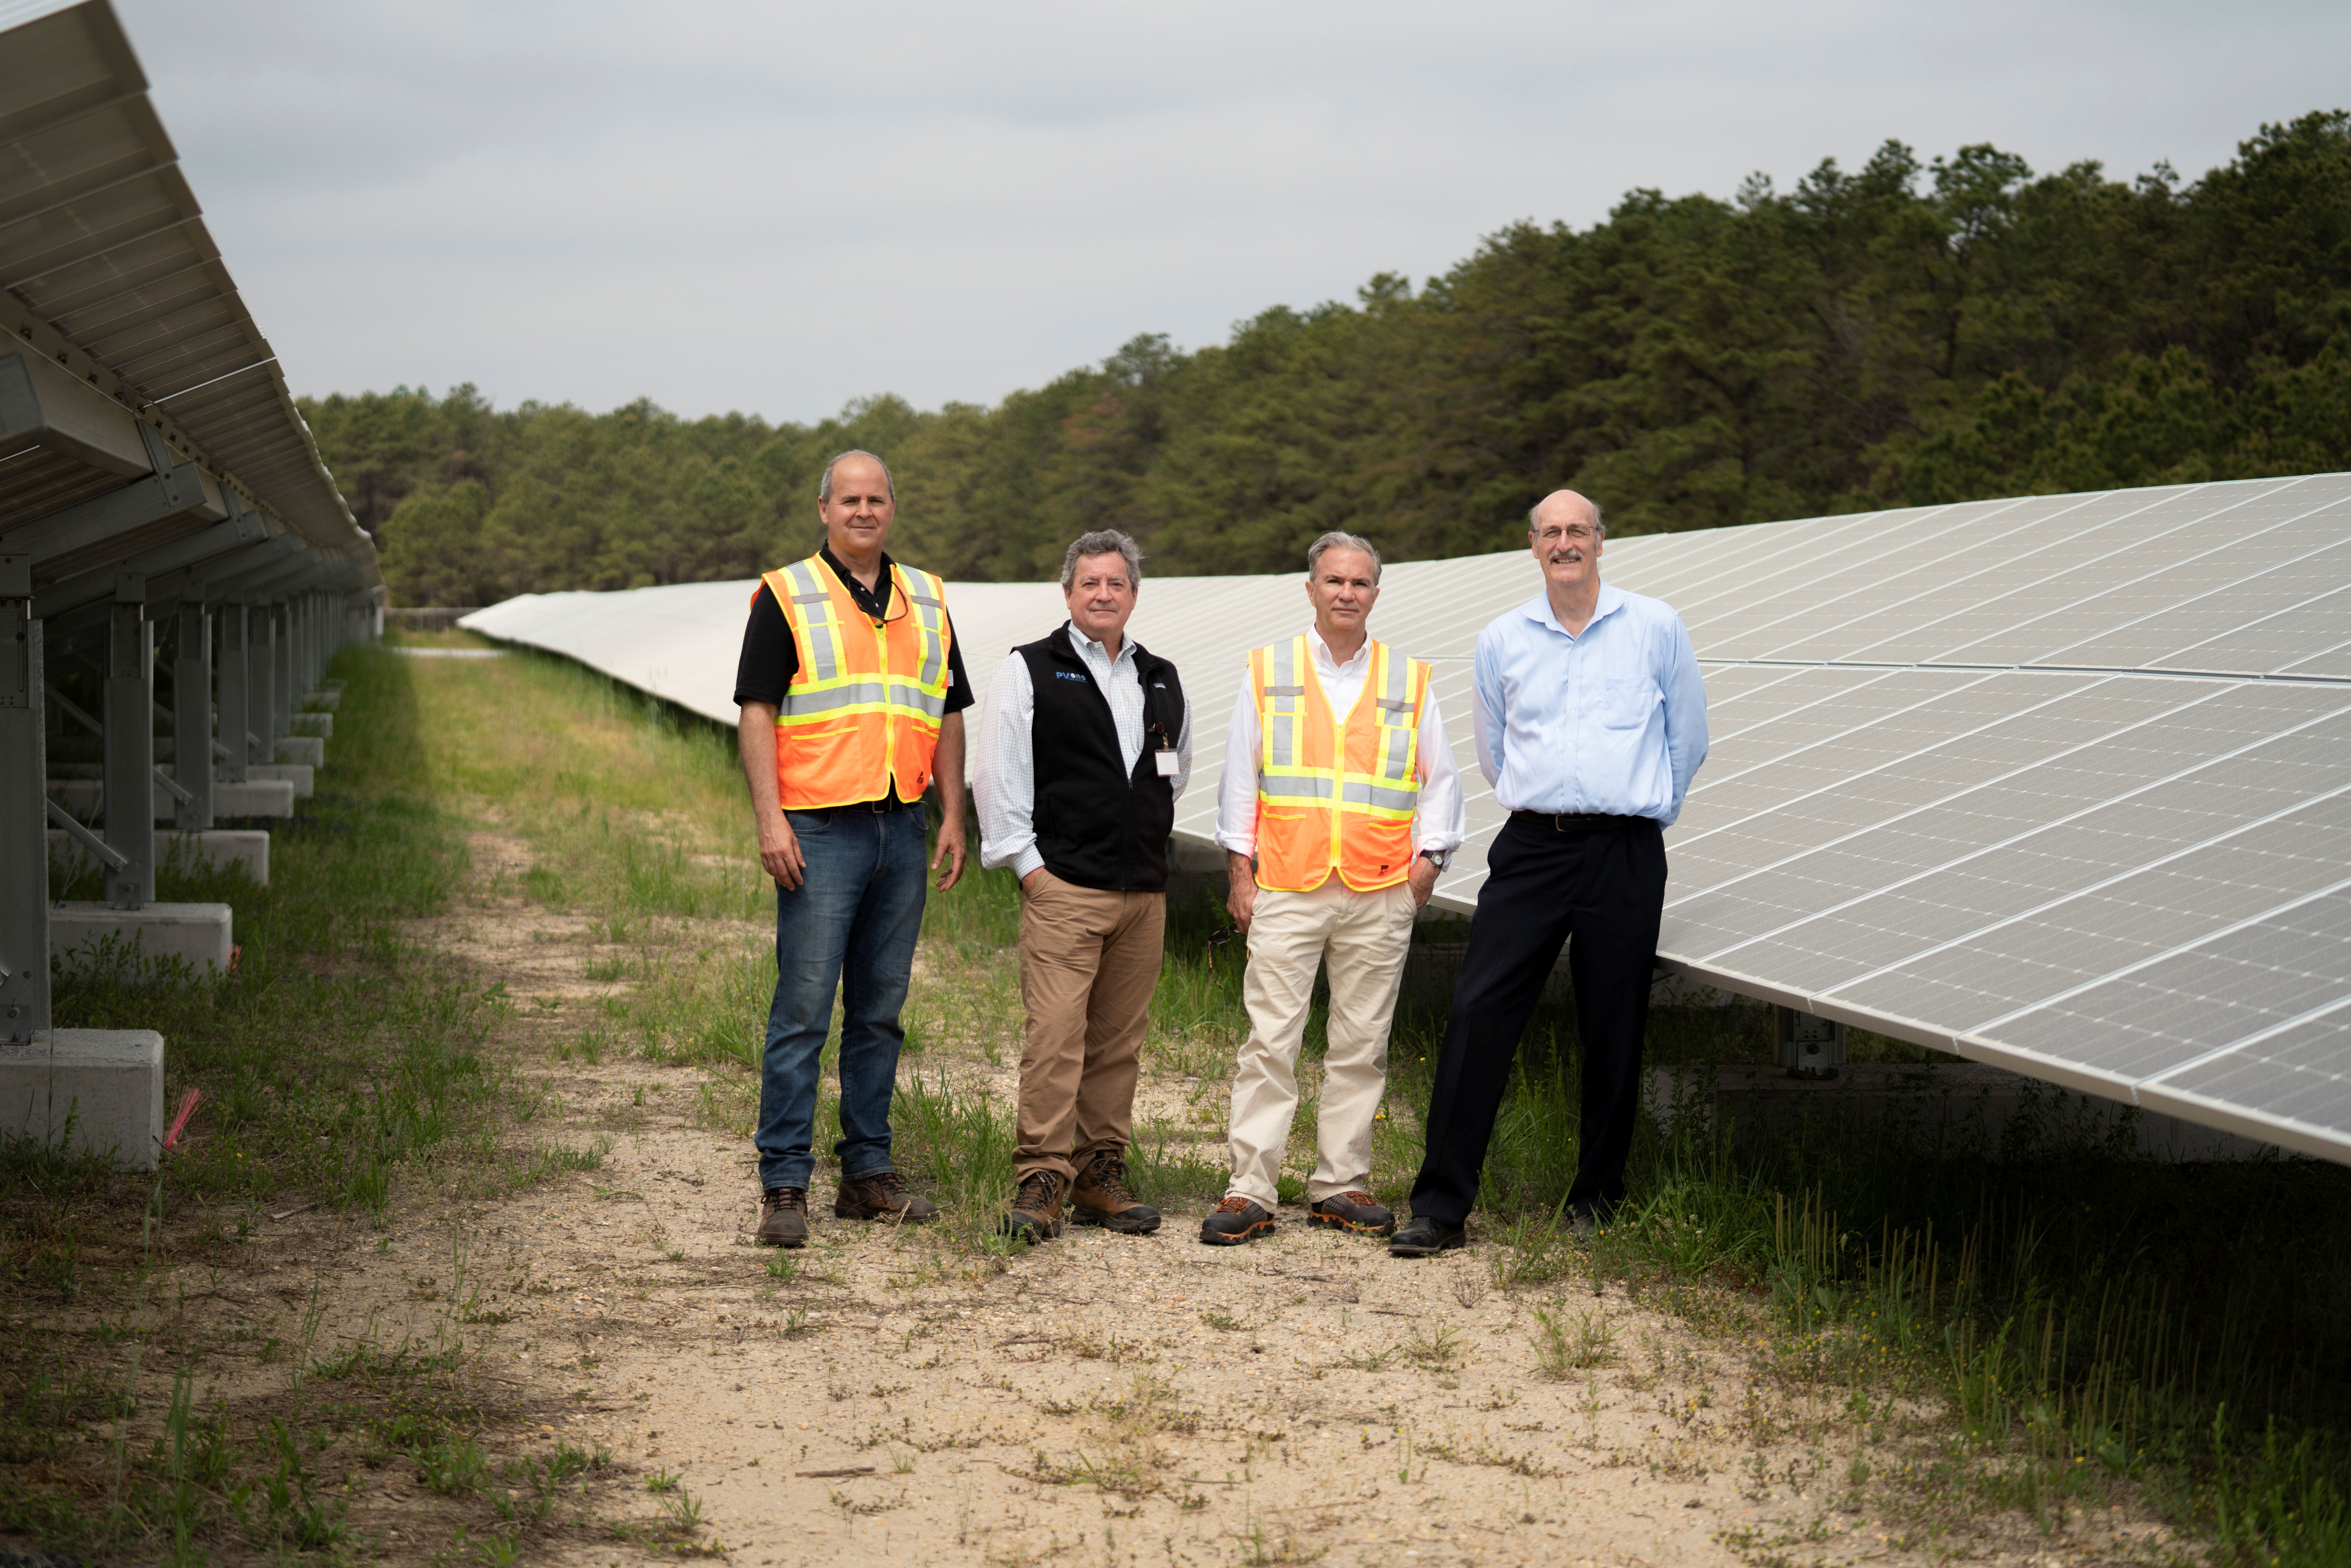 EDF Renewables Director Felix Aguayo, PV One Principal, Elliott Shanley, EDF Renewables Director Thomas Leyden, and BASF Sites Manager Charlie Waltz at the Toms River Solar Farm which was built on an EPA Superfund site in Toms River, New Jersey, U.S., 26 May, 2021. REUTERS/Dane Rhys